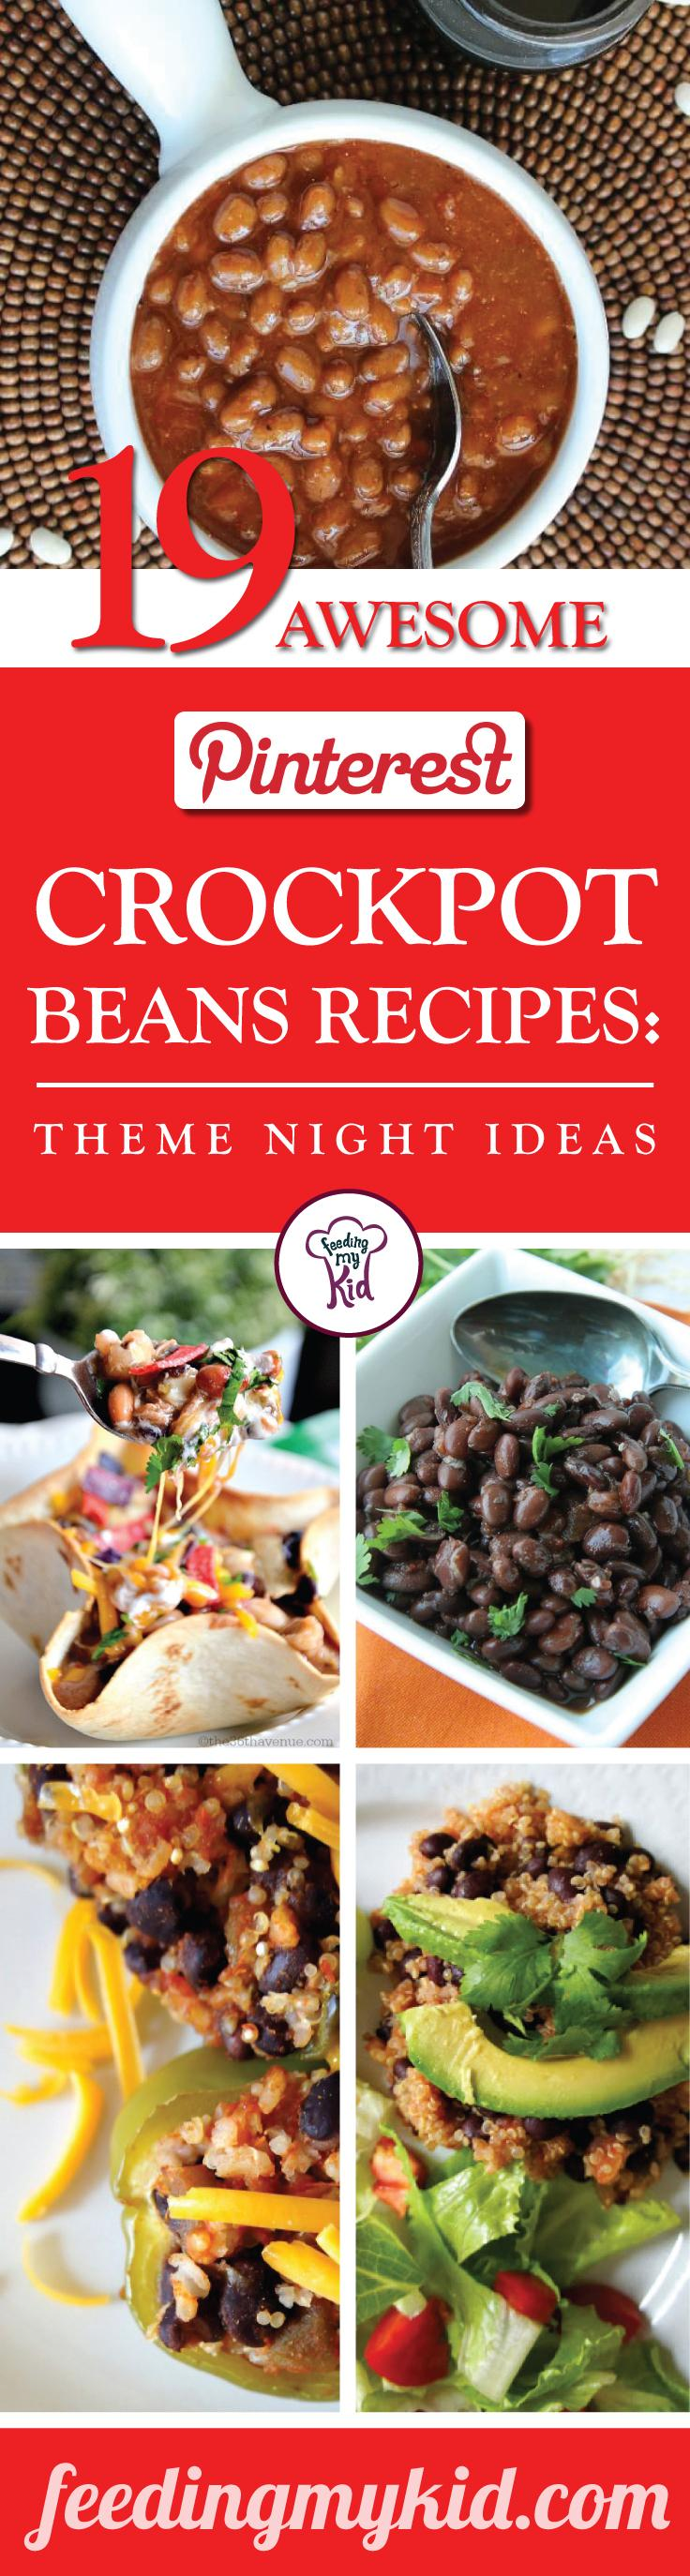 This is a must pin! These bean recipes will make the perfect theme night meal. Feeding My Kid is a great website for parents, filled with all the information you need about how to raise your kids, from healthy tips to nutritious recipes. #beanrecipe #mealtime #themenight